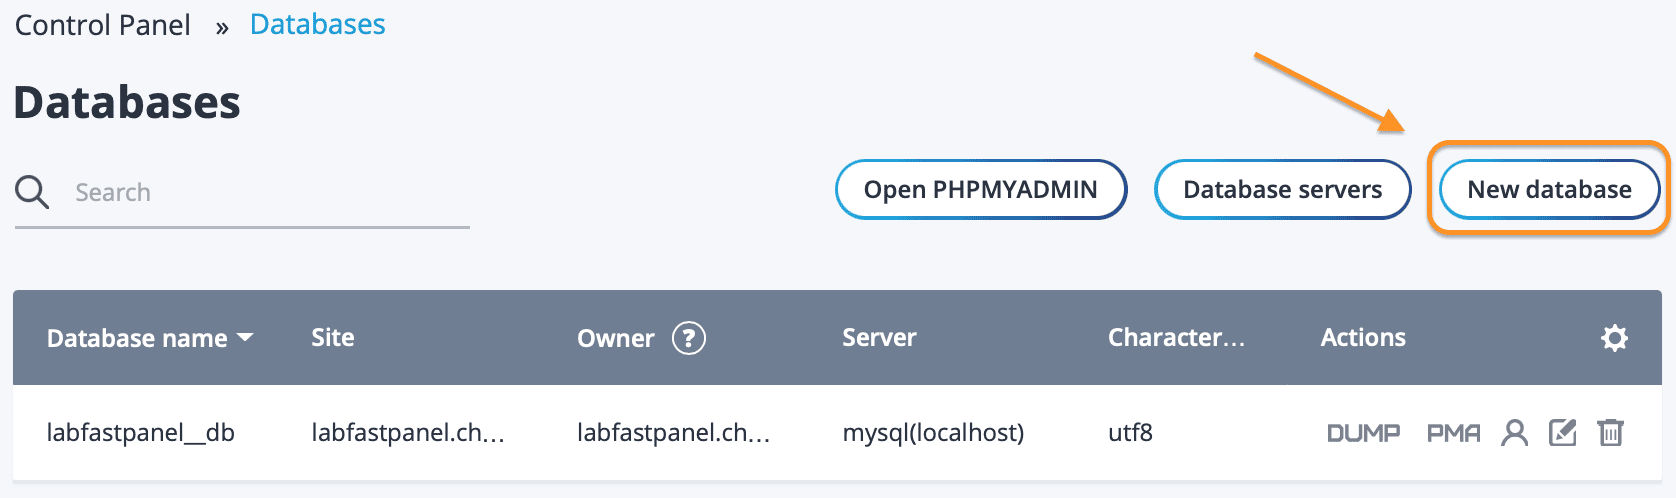 tạo database trên FASTPANEL - how to create database FASTPANEL